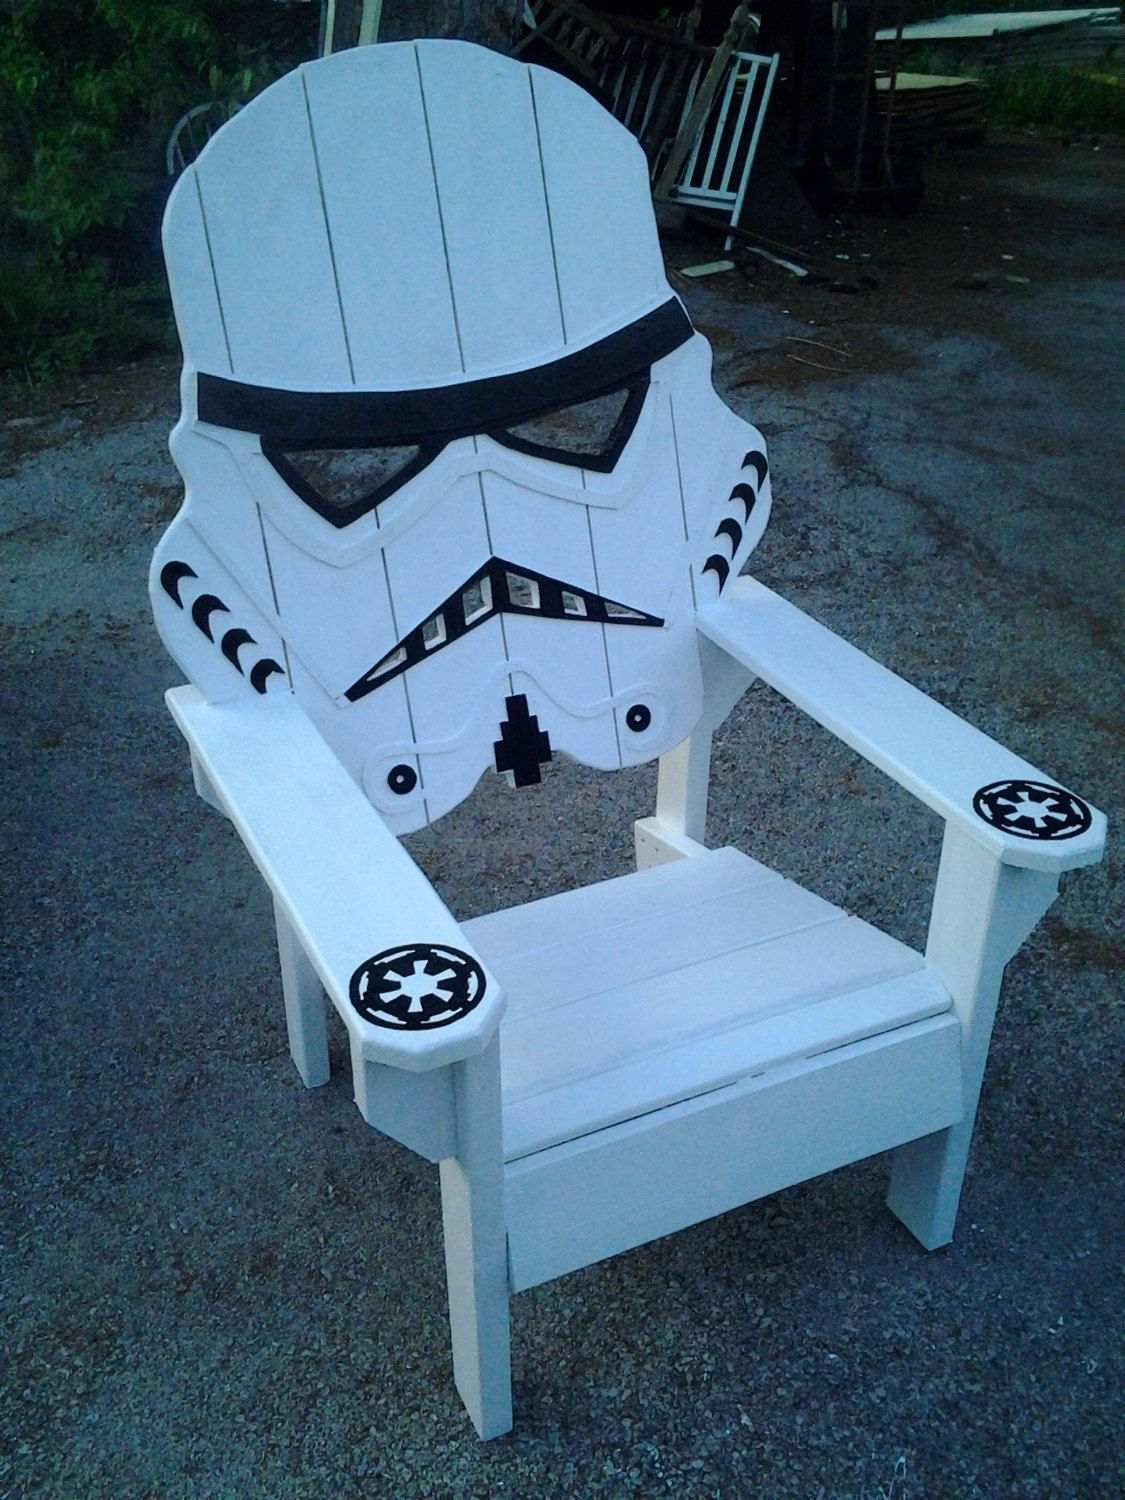 Wooden beach chair back - Relax After A Long Day Of Battling Rebel Scum By Plopping Down On The Stormtrooper Wooden Lawn Chair This Handmade Furniture Features All Wood Construction